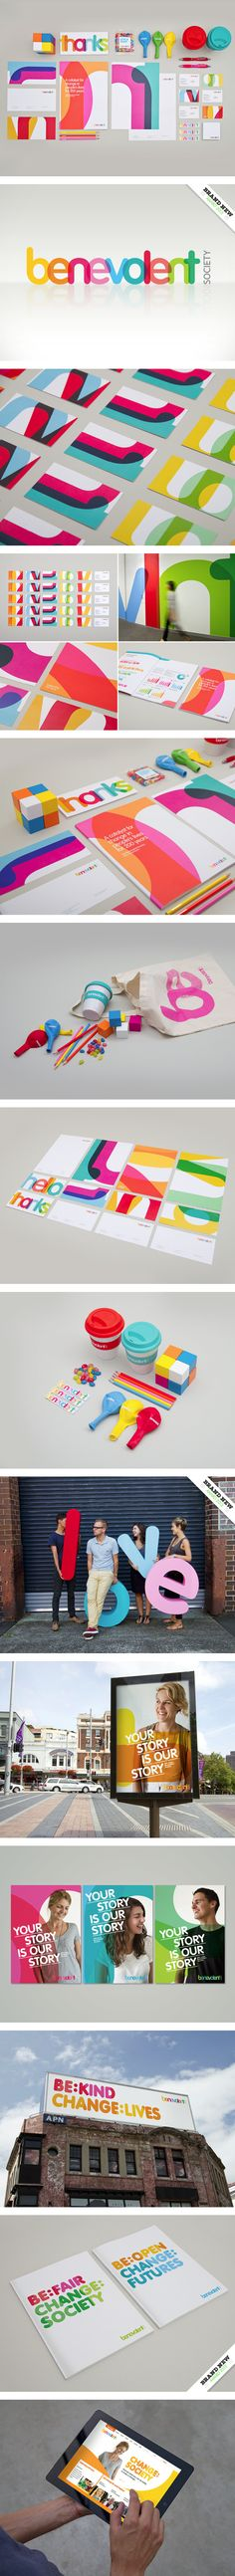 Benevolent Society on Behance #stationery